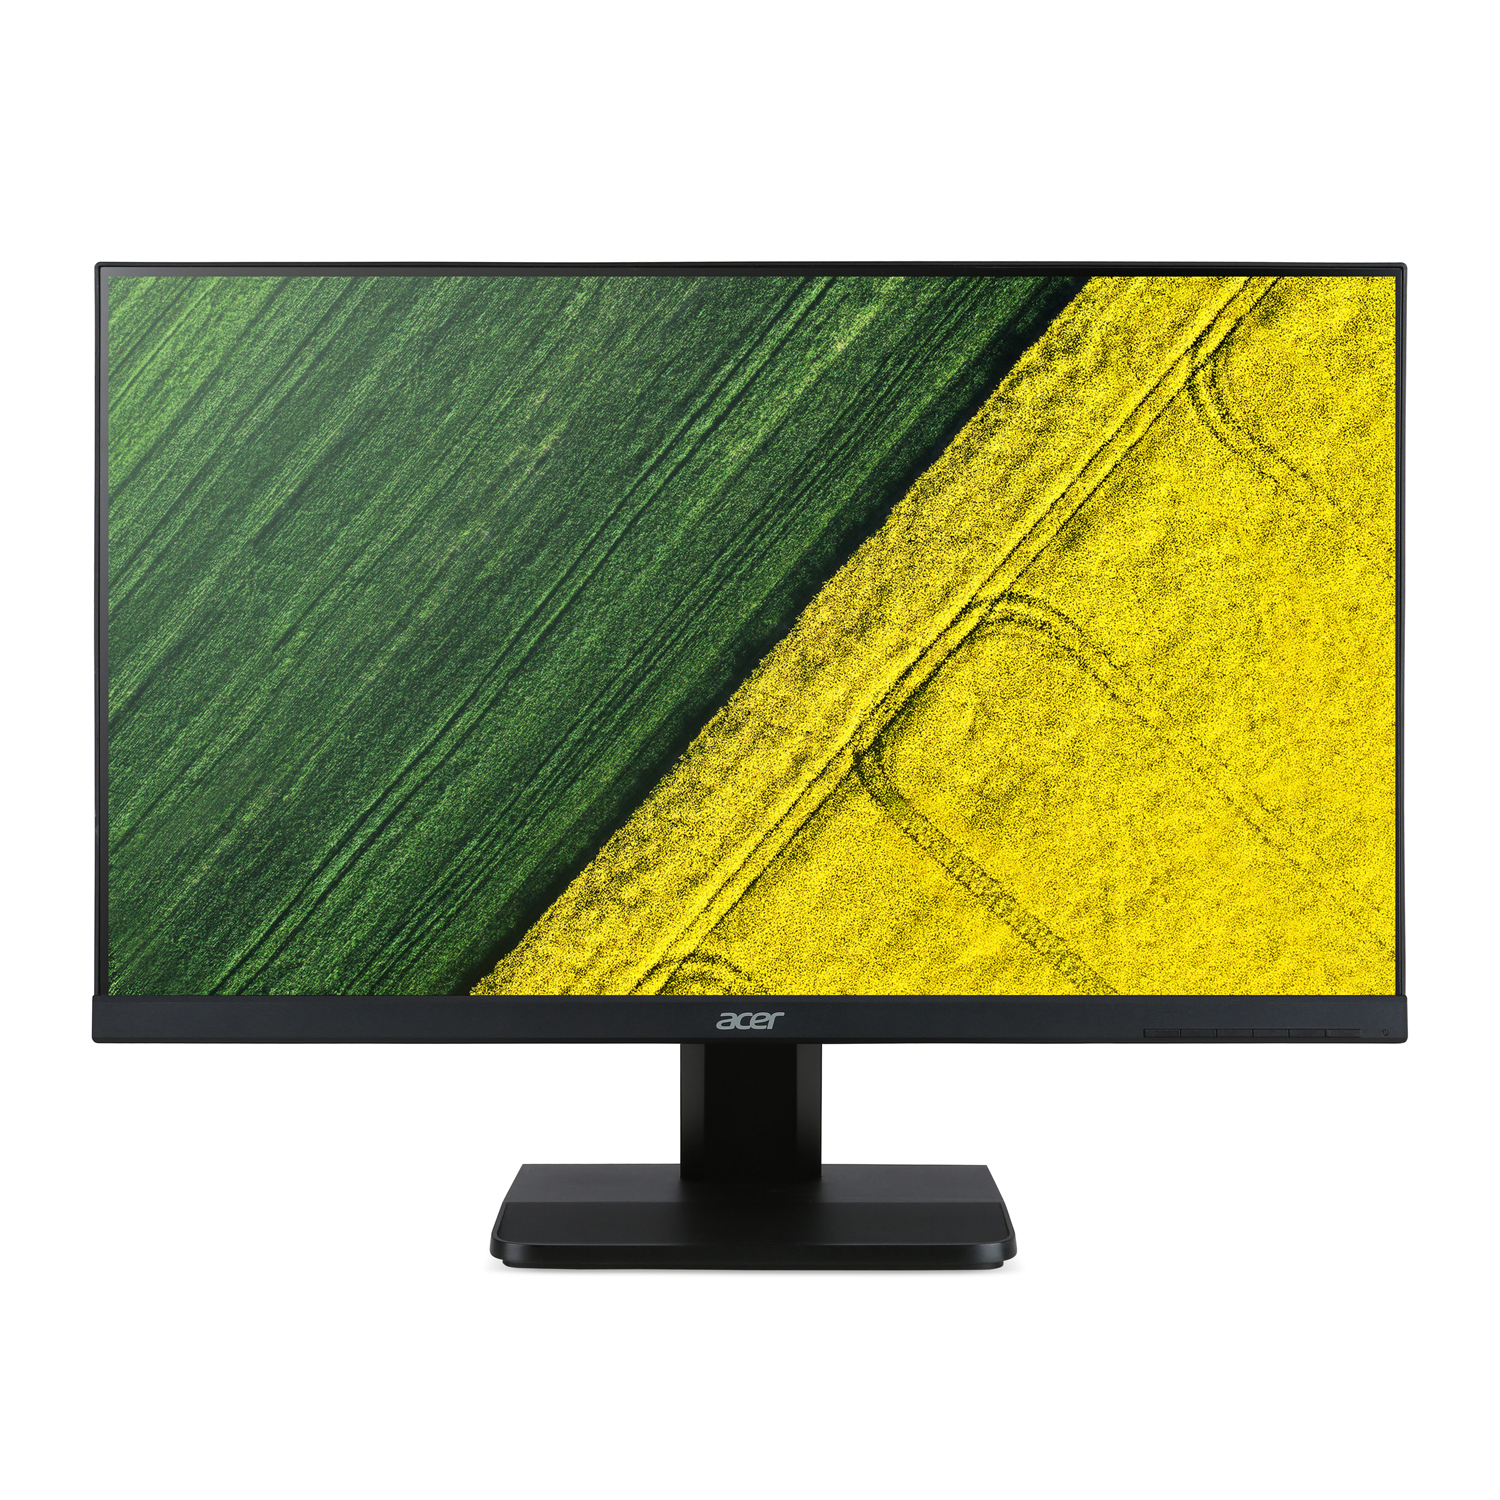 Acer VA270H bix 27-inch Full HD Monitor by Acer